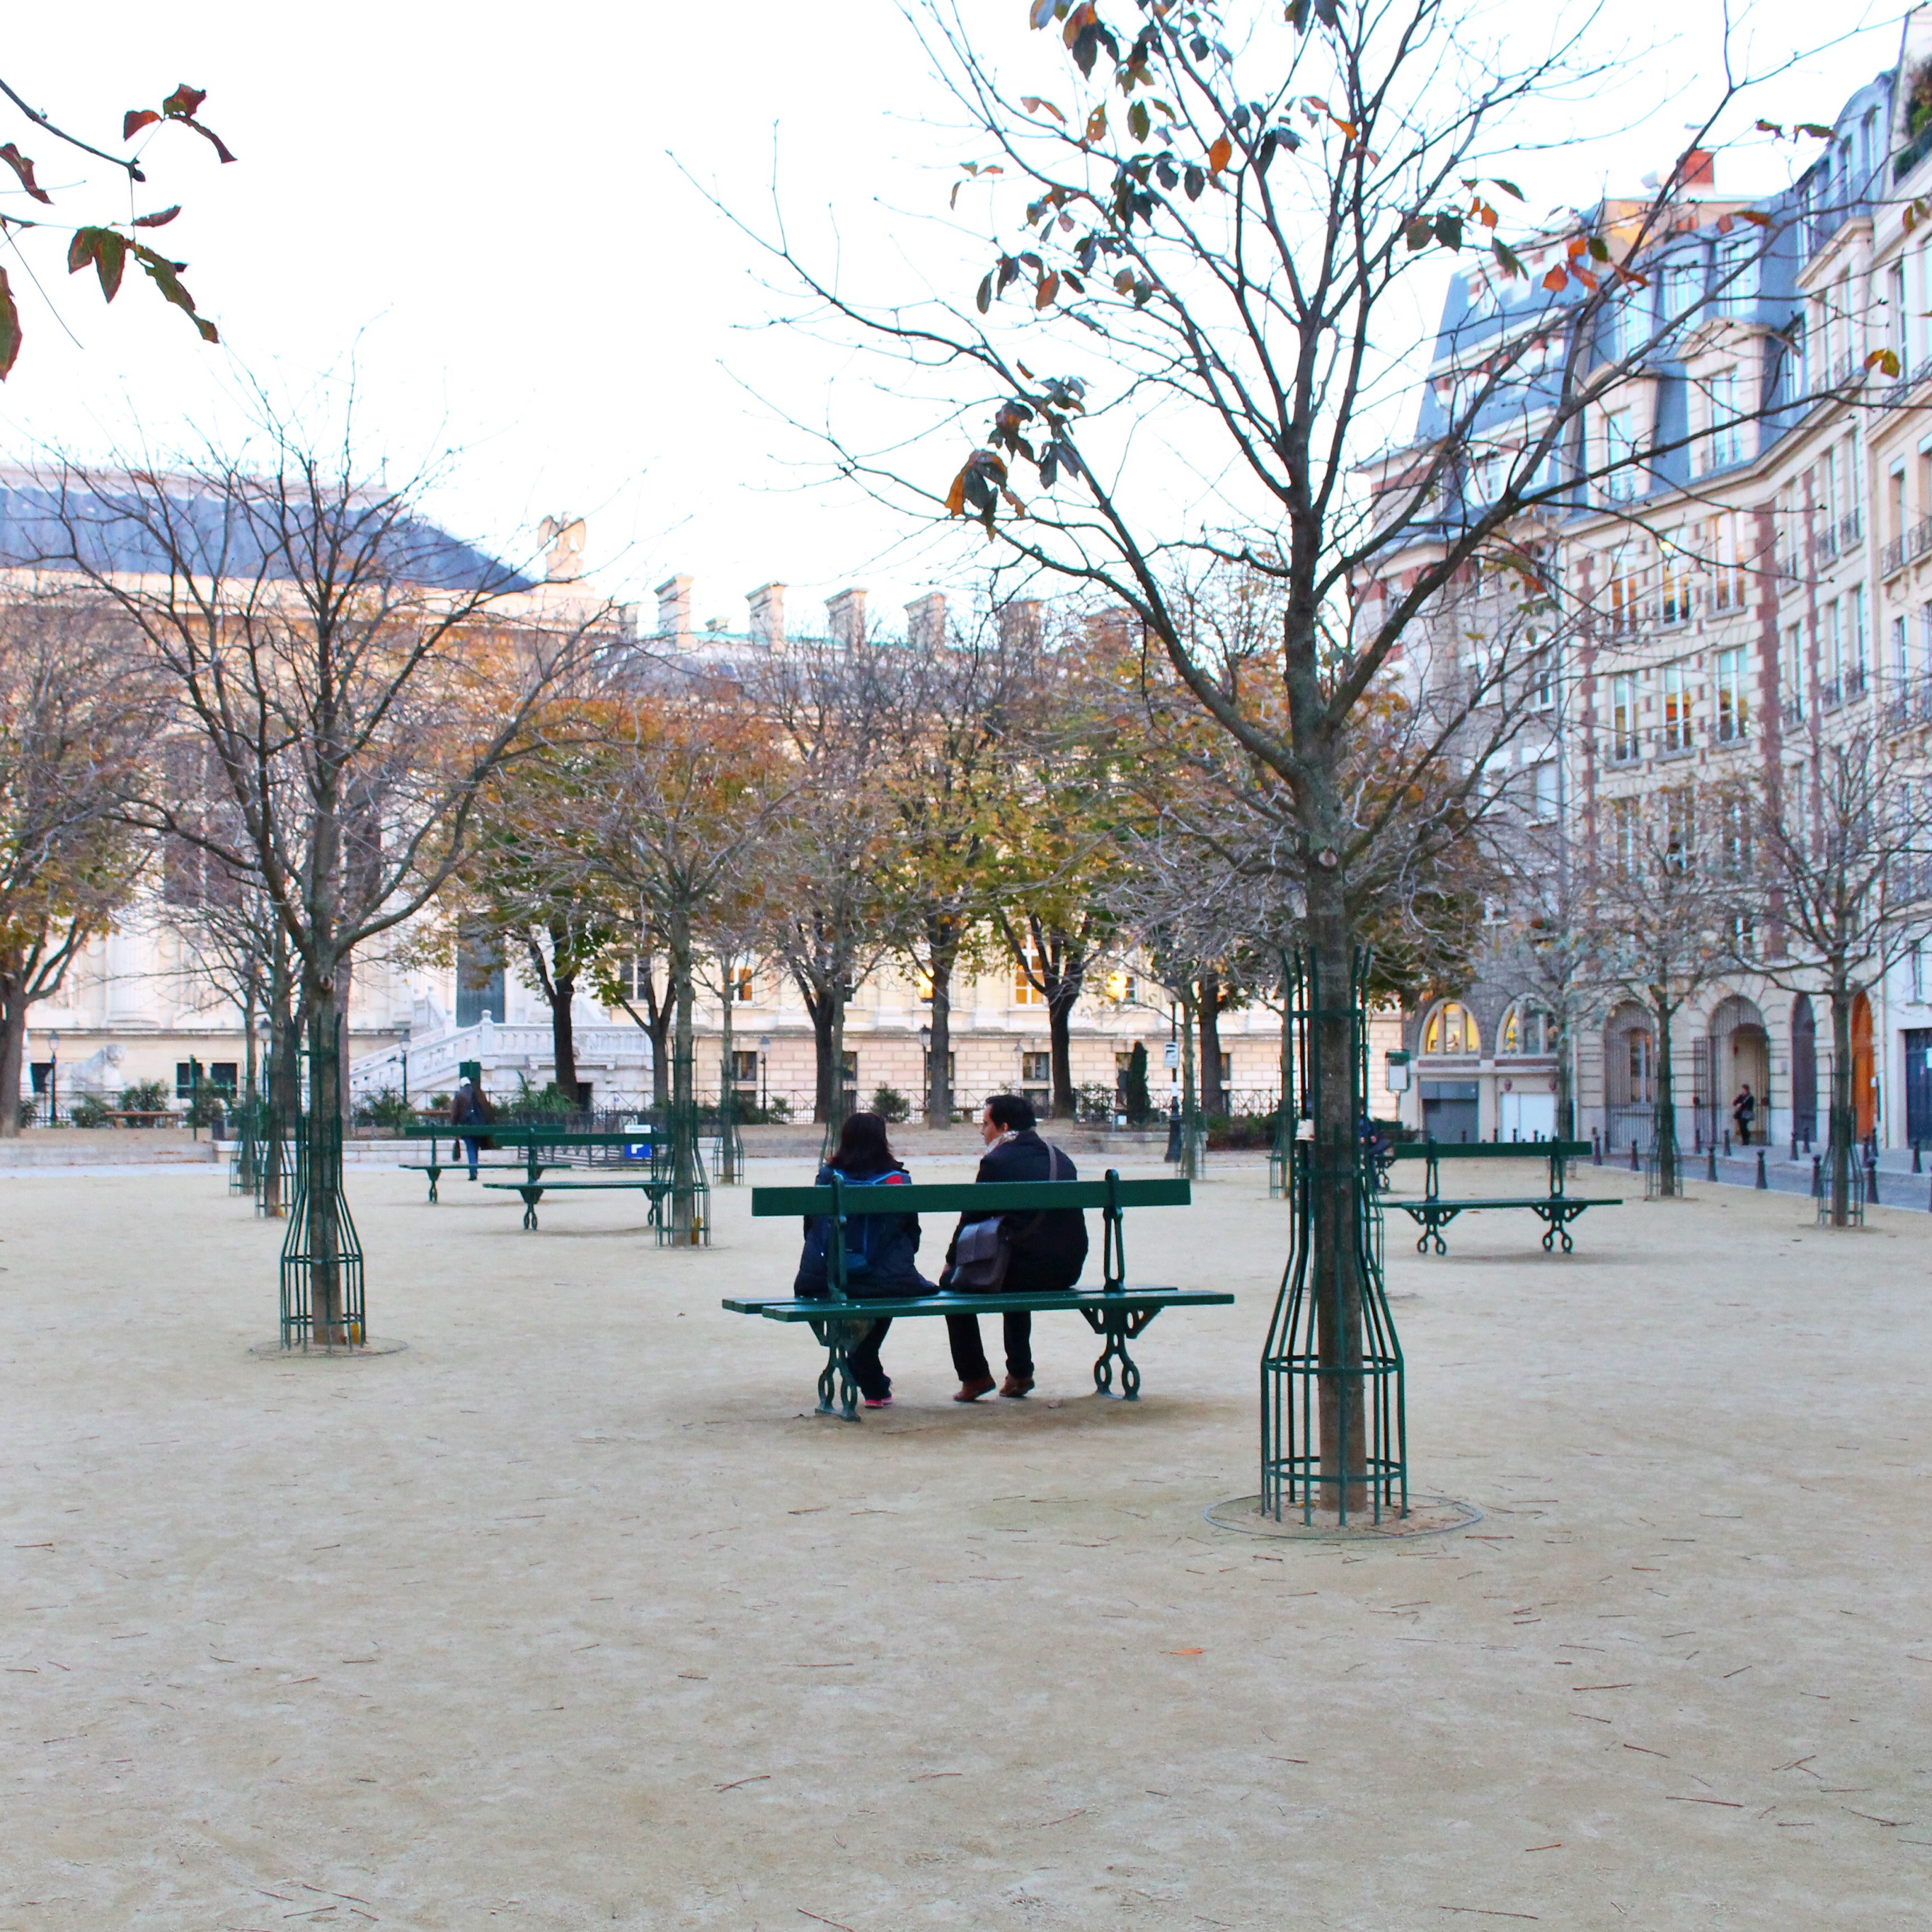 Catching up at Place Dauphine. Interested in an internship with HiP Paris Blog? Learn more at http://haveninparis.com/careers.php.